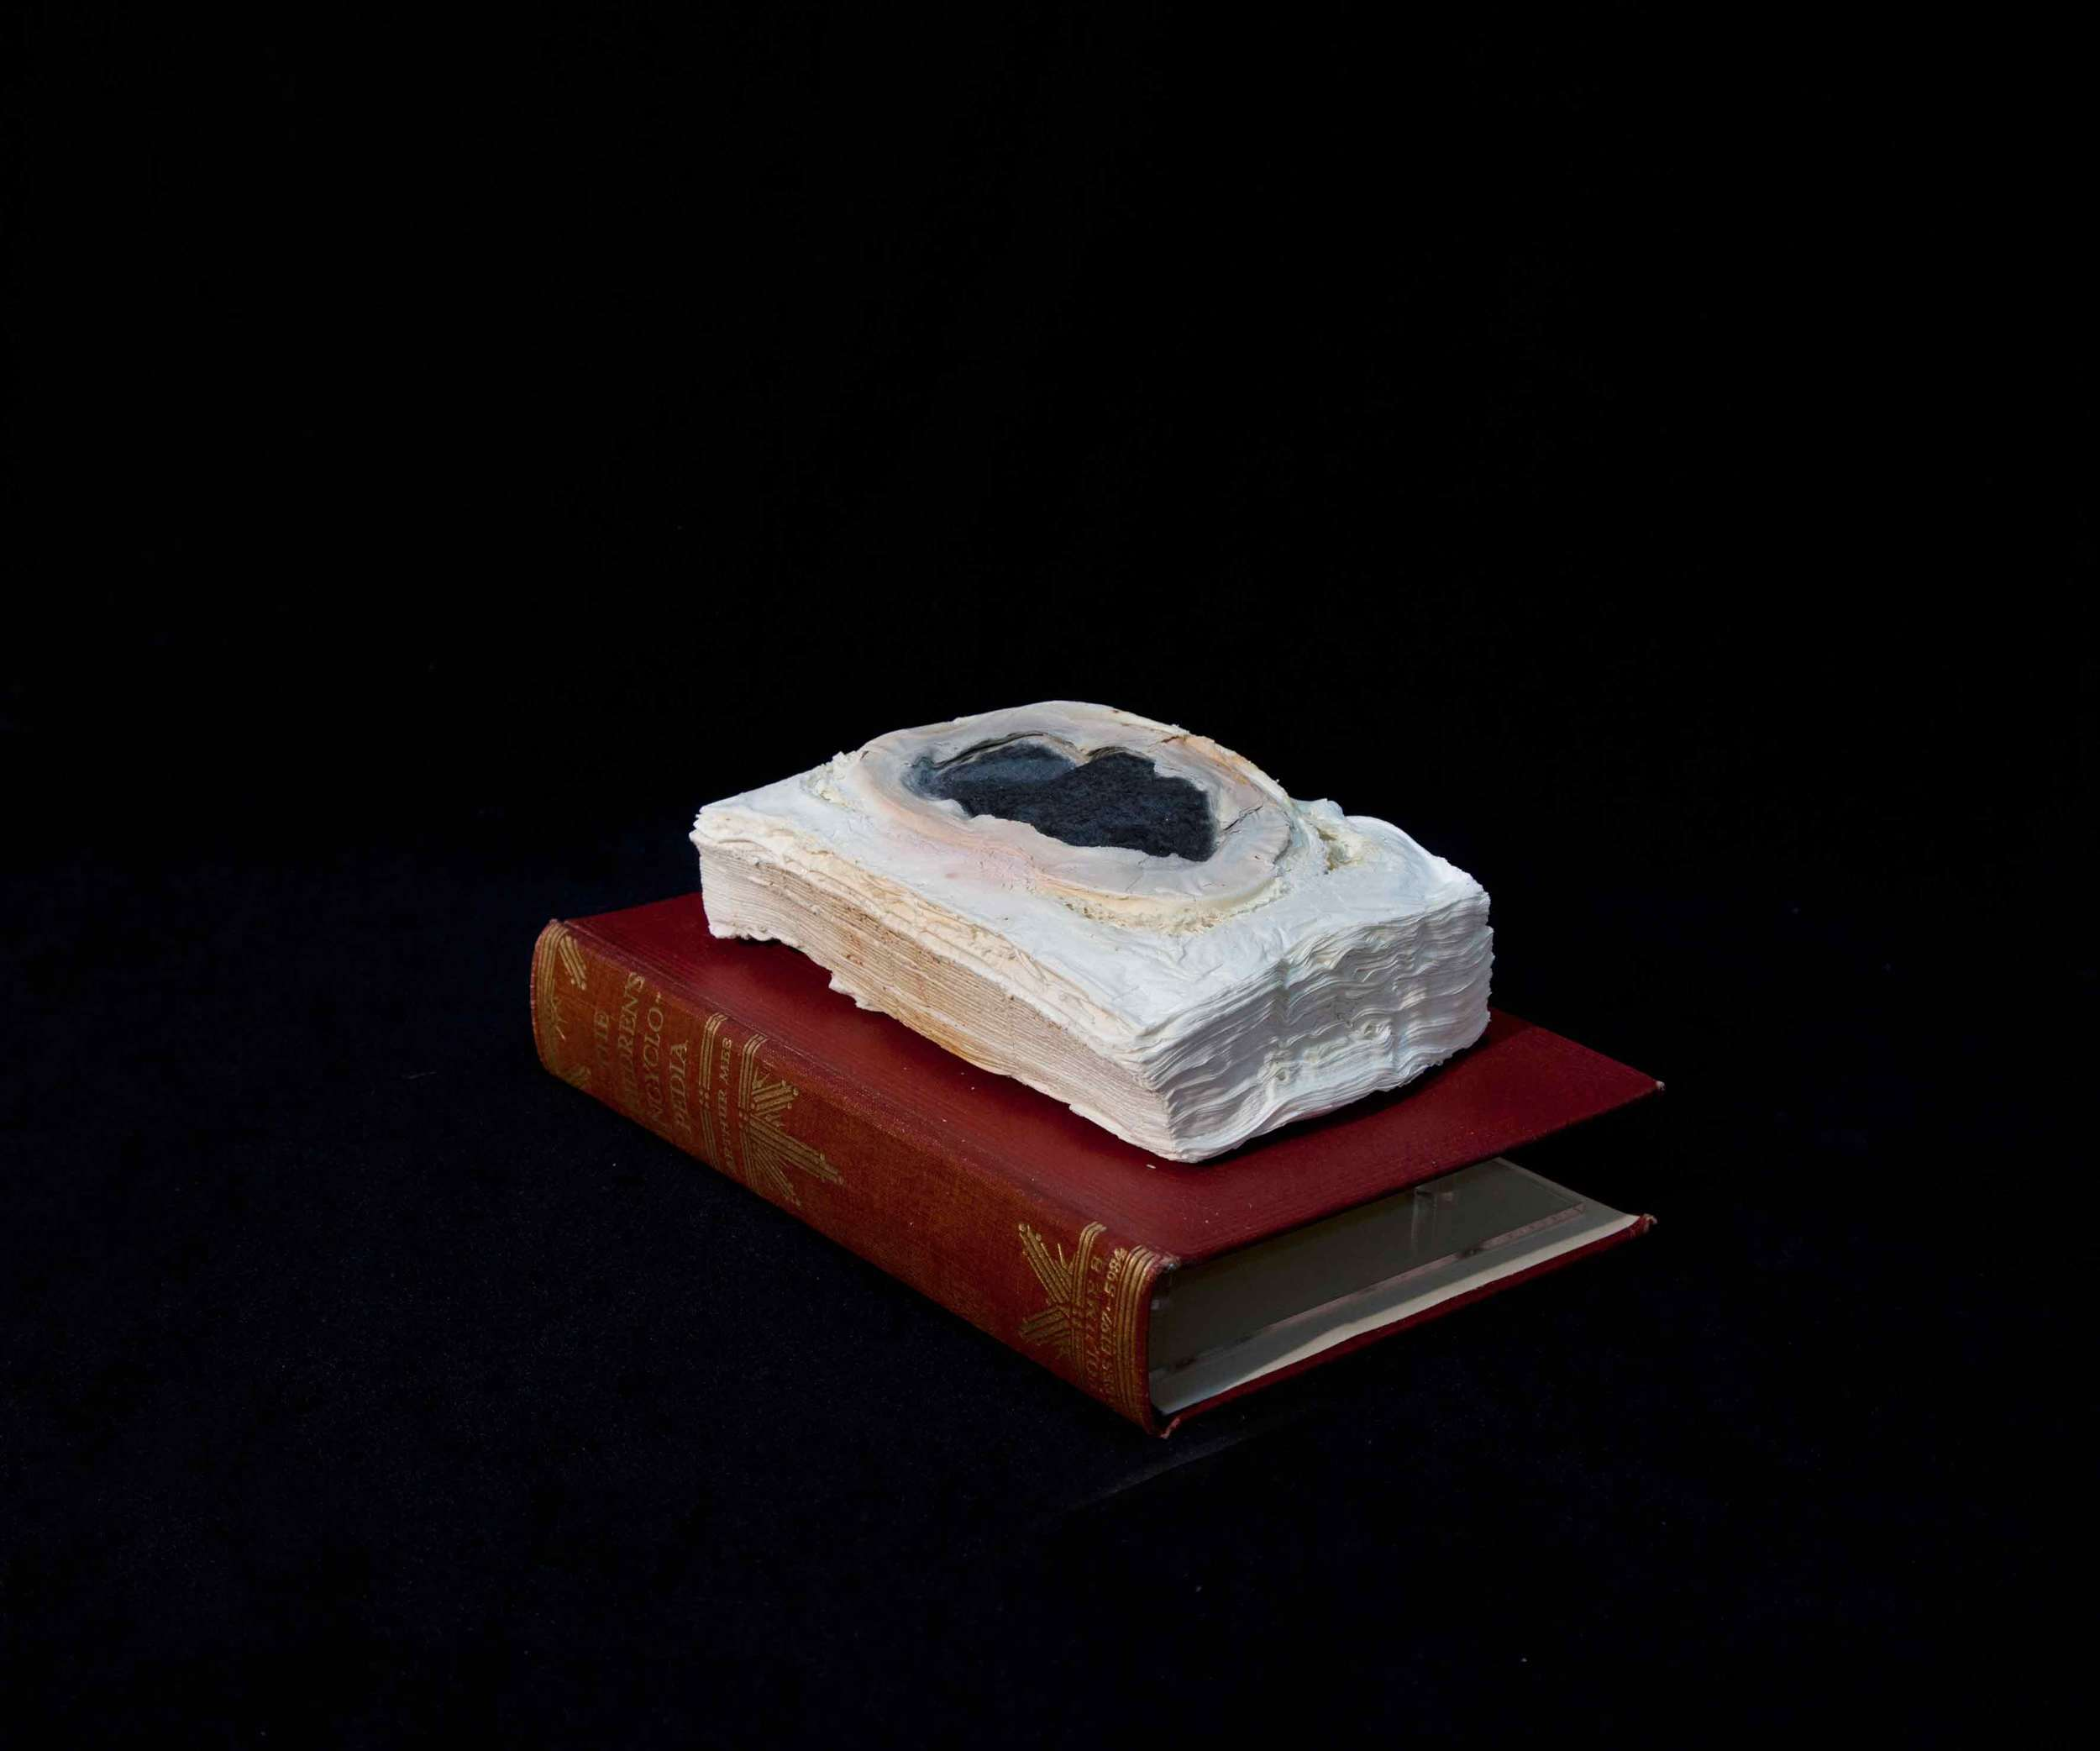 CYRUS TANG   Children's Encyclopaedia Vol 8  2016 Cremated book ashes, book cover and acrylic case 29 x 21 x 21 cm